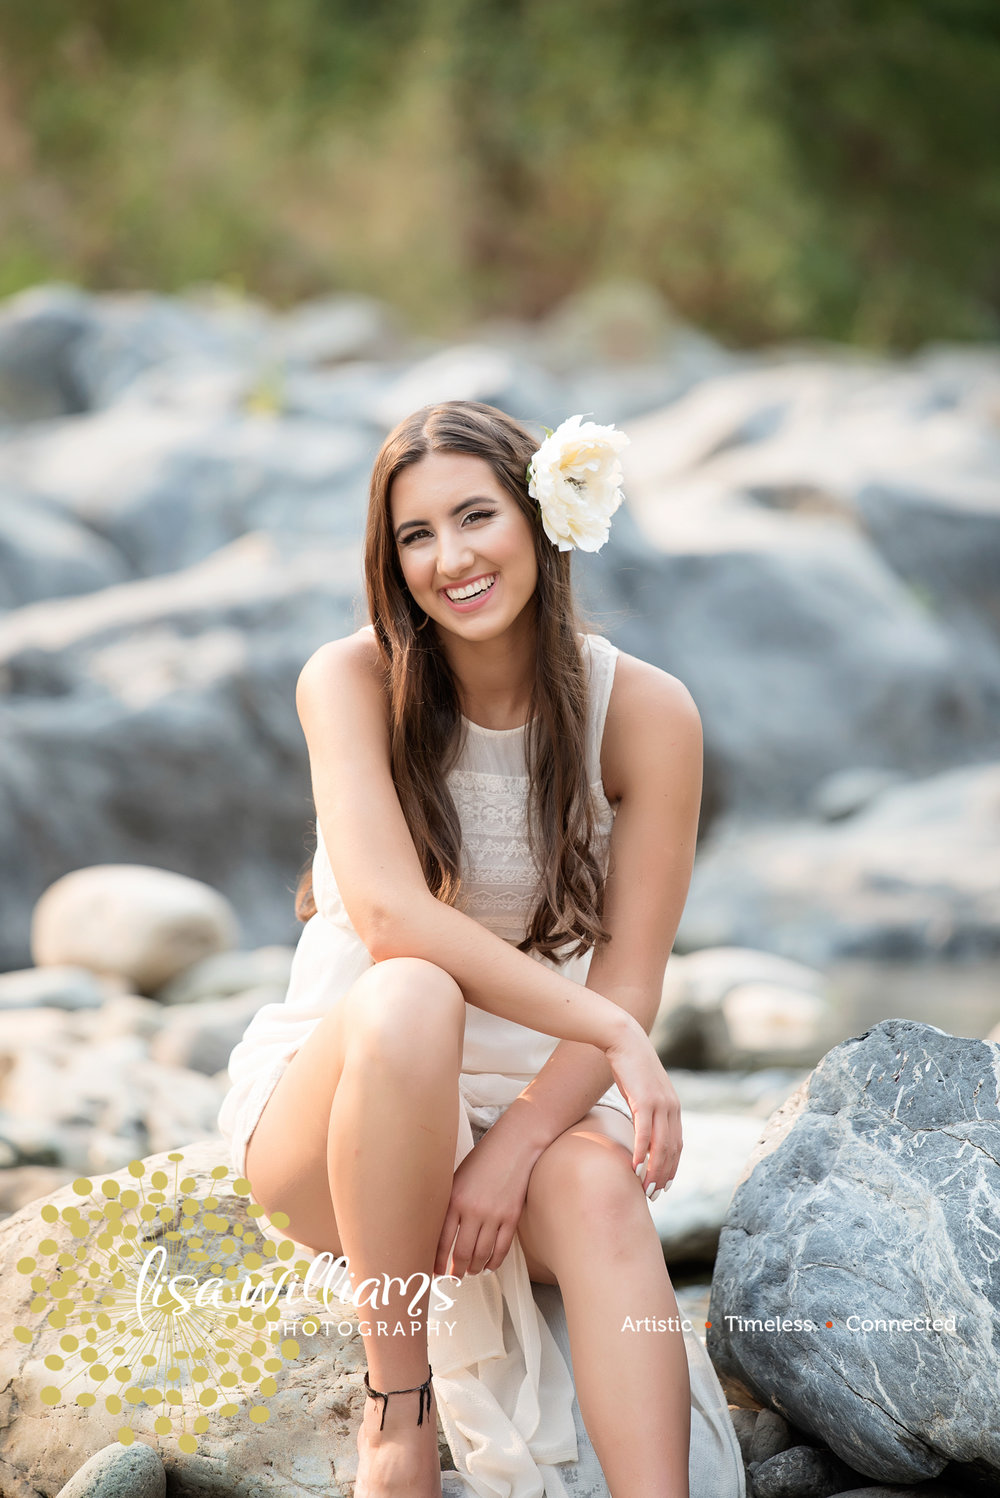 Lisa Williams photography – grass valley portrait photographer- senior portrait photographer- northern California senior portraits- Nevada county senior portraits – Colfax Senior Portraits – Rocklin Senior Portraits- Roseville Senior Portraits – t-22.jpg